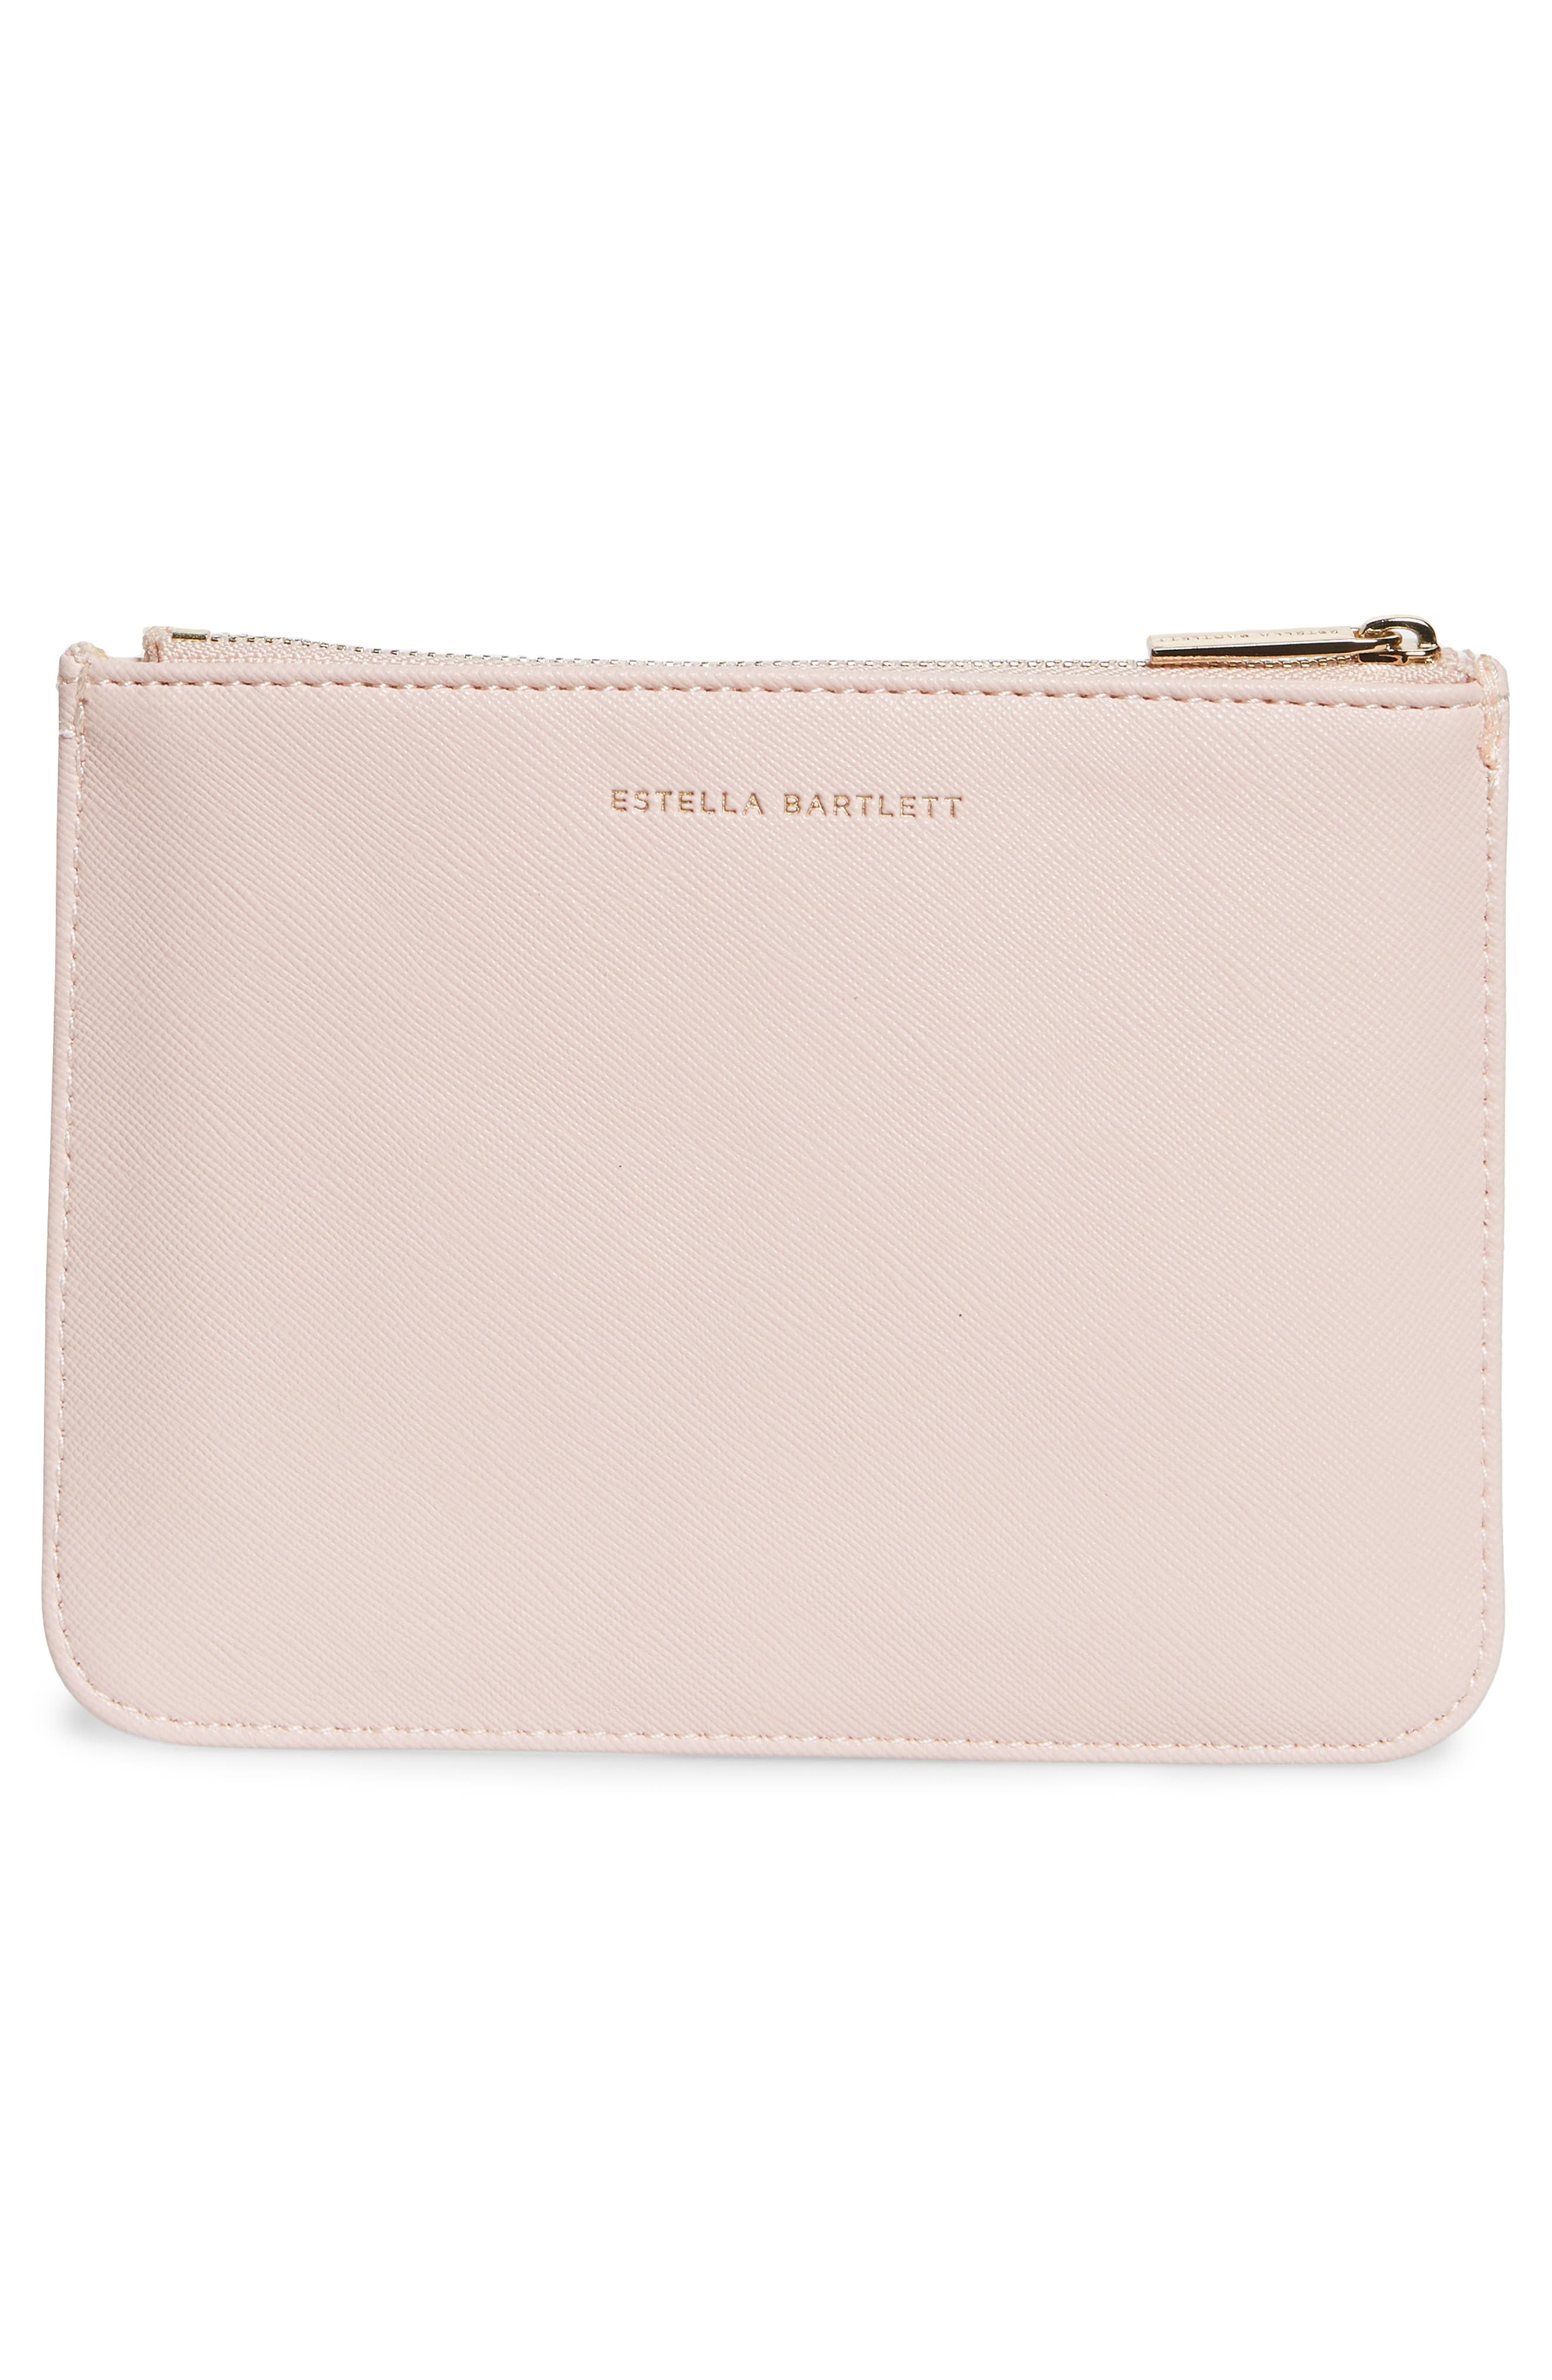 Small Faux Leather Zip Pouch,                             Alternate thumbnail 3, color,                             BLUSH - WOMAN ON A MISSION